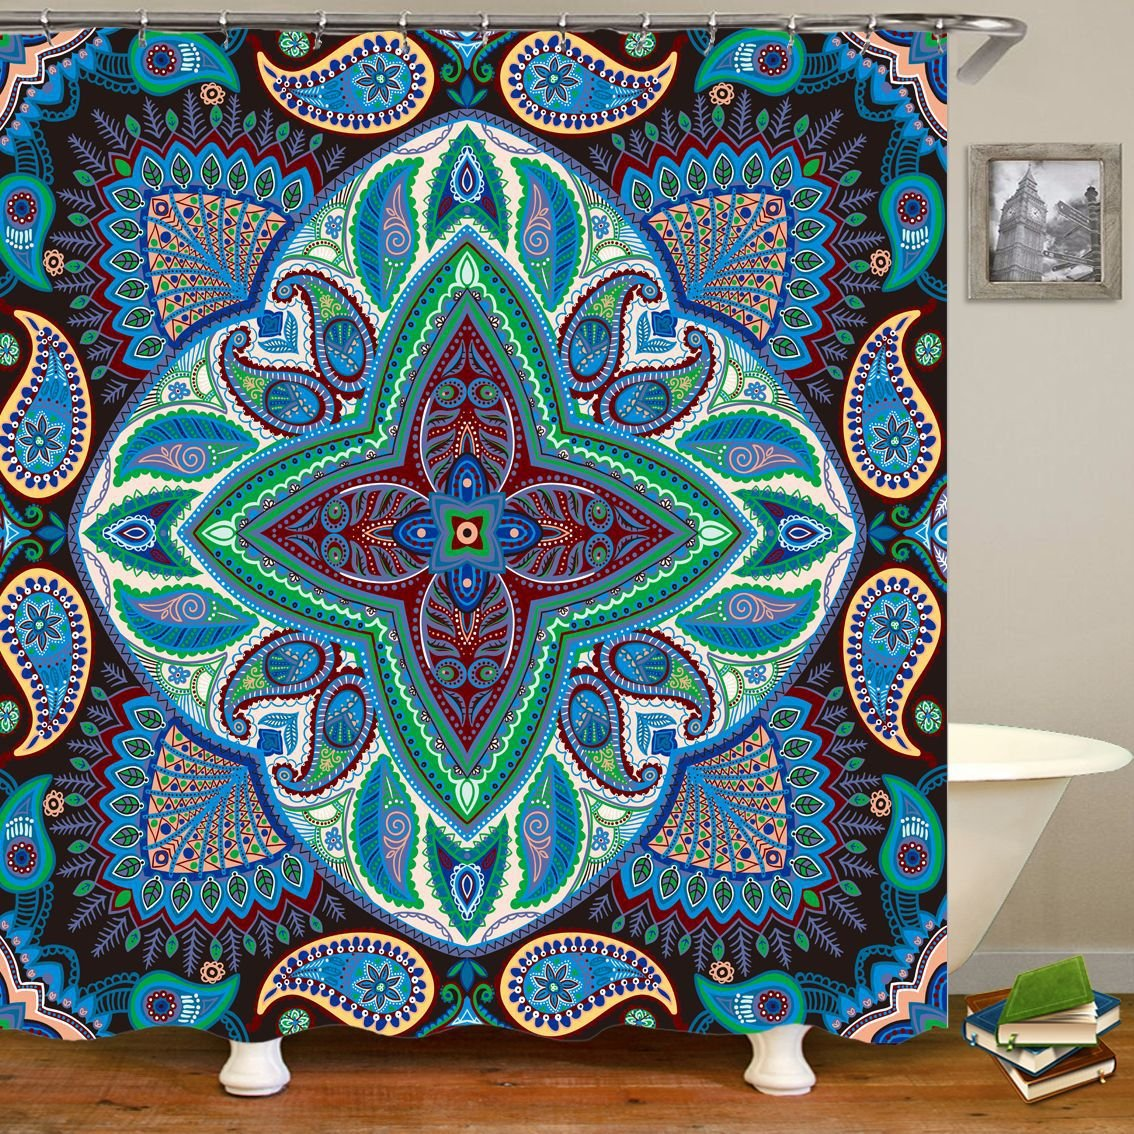 Boho Psychedelic Tapestry Hippie Mandala Wall Hanging Sheet Coverlet Picnic Bedspread Curtain Decor Magical Thinking Bohemian Decoration for Home Dorm Room YLB24 (Style 1, 59 W*72 H) 59 W*72 H) ZhuoLang